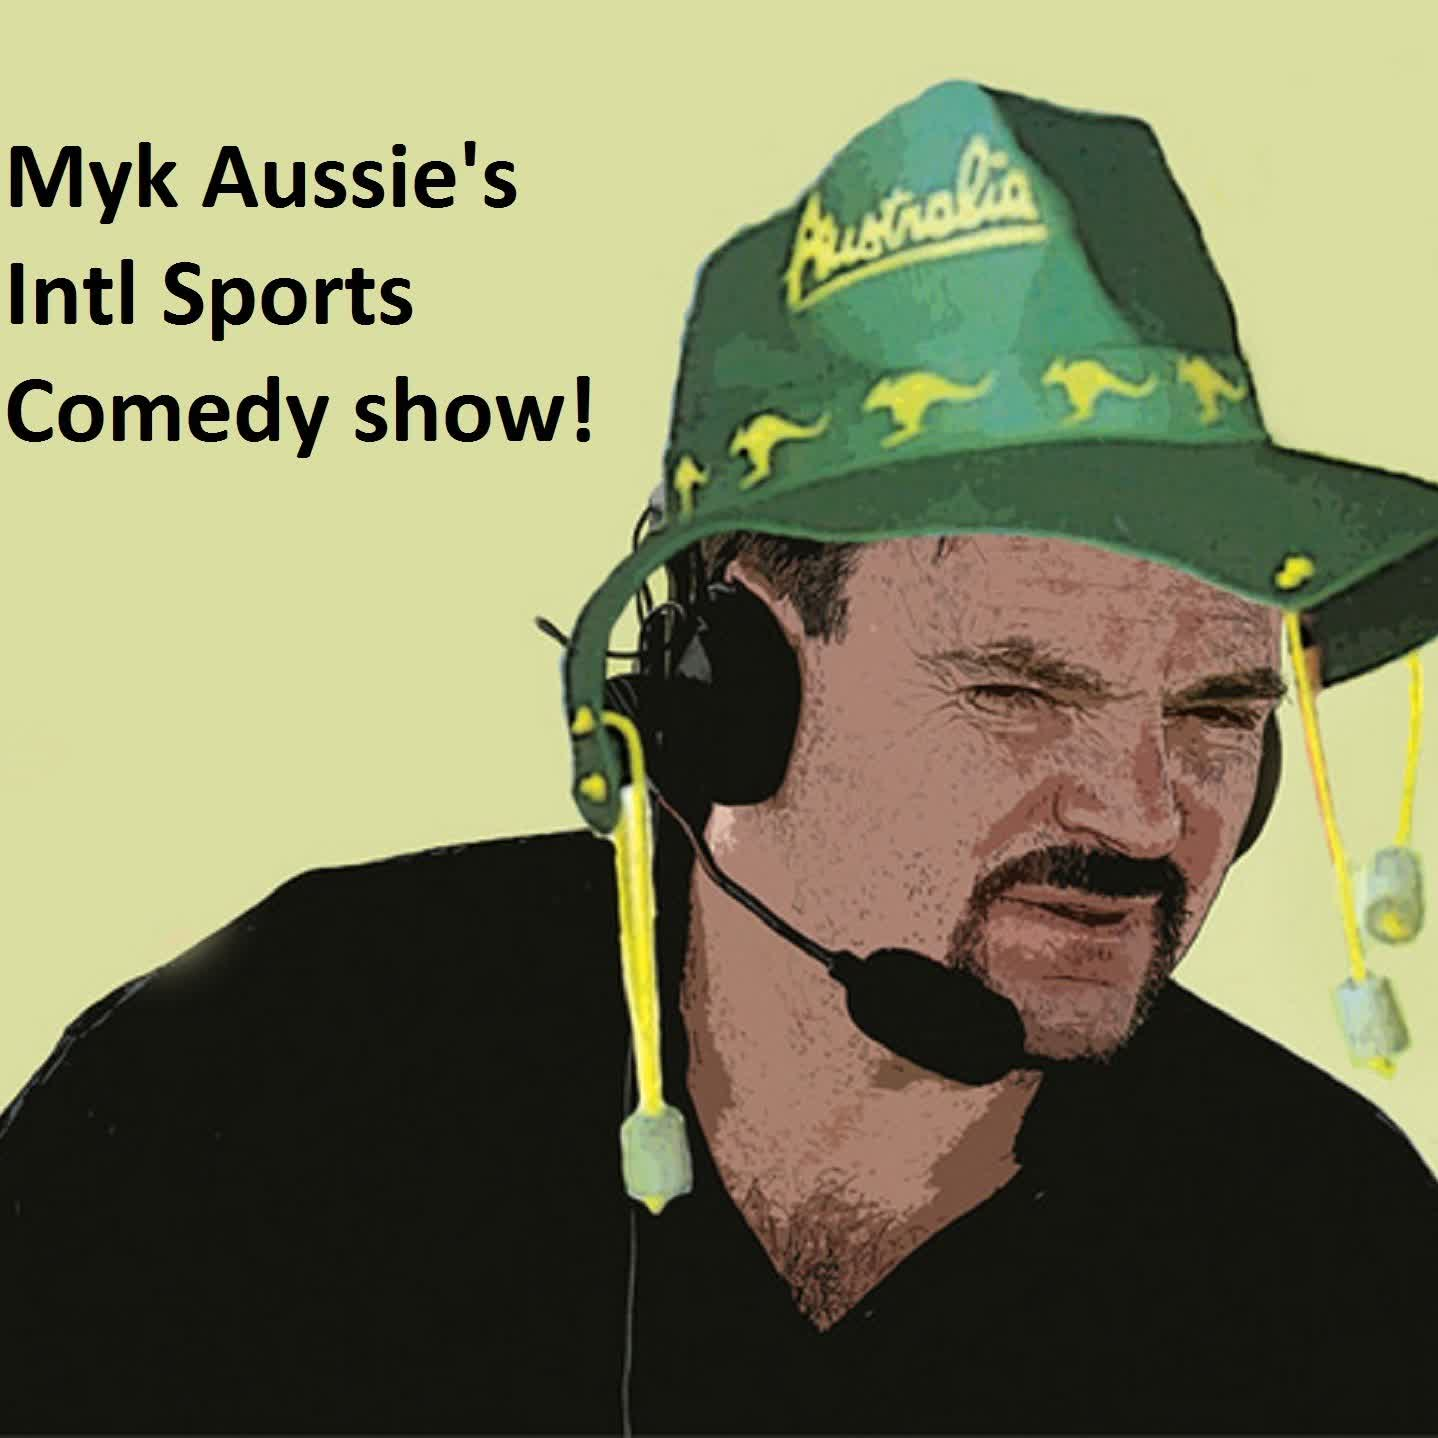 Myk Aussie Intl Sports Comedy show - Episode 3